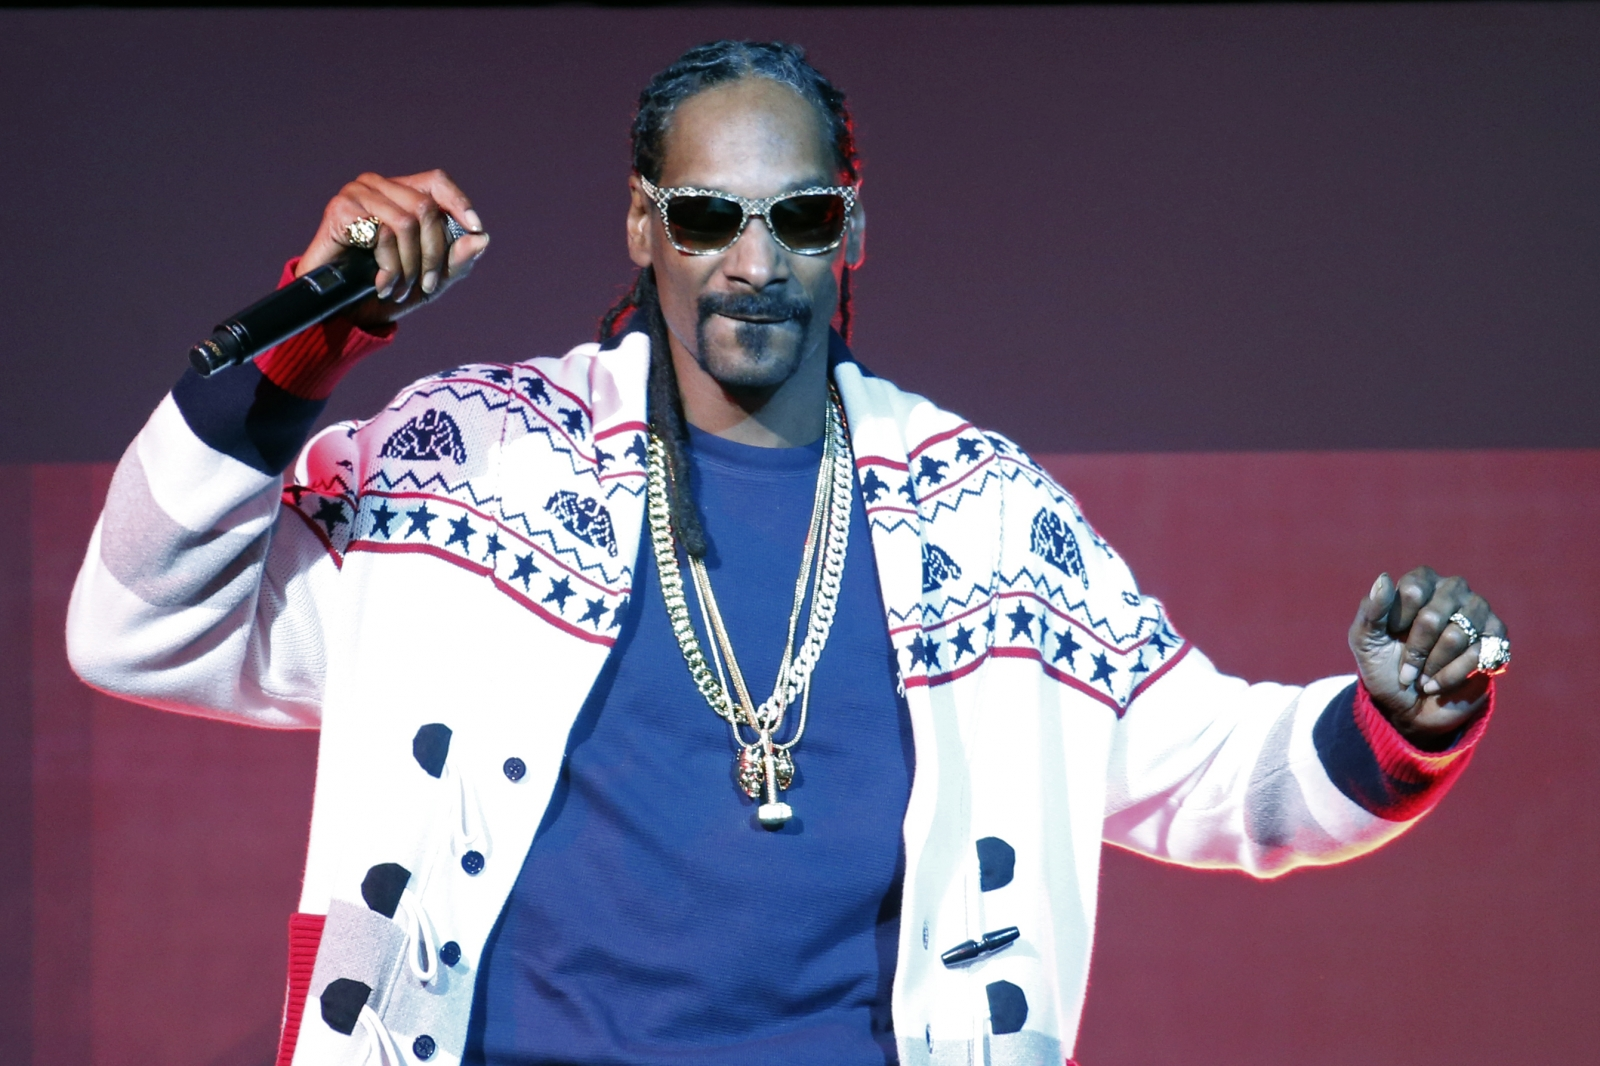 Snoop Dogg on Jeremy Clarkson's side